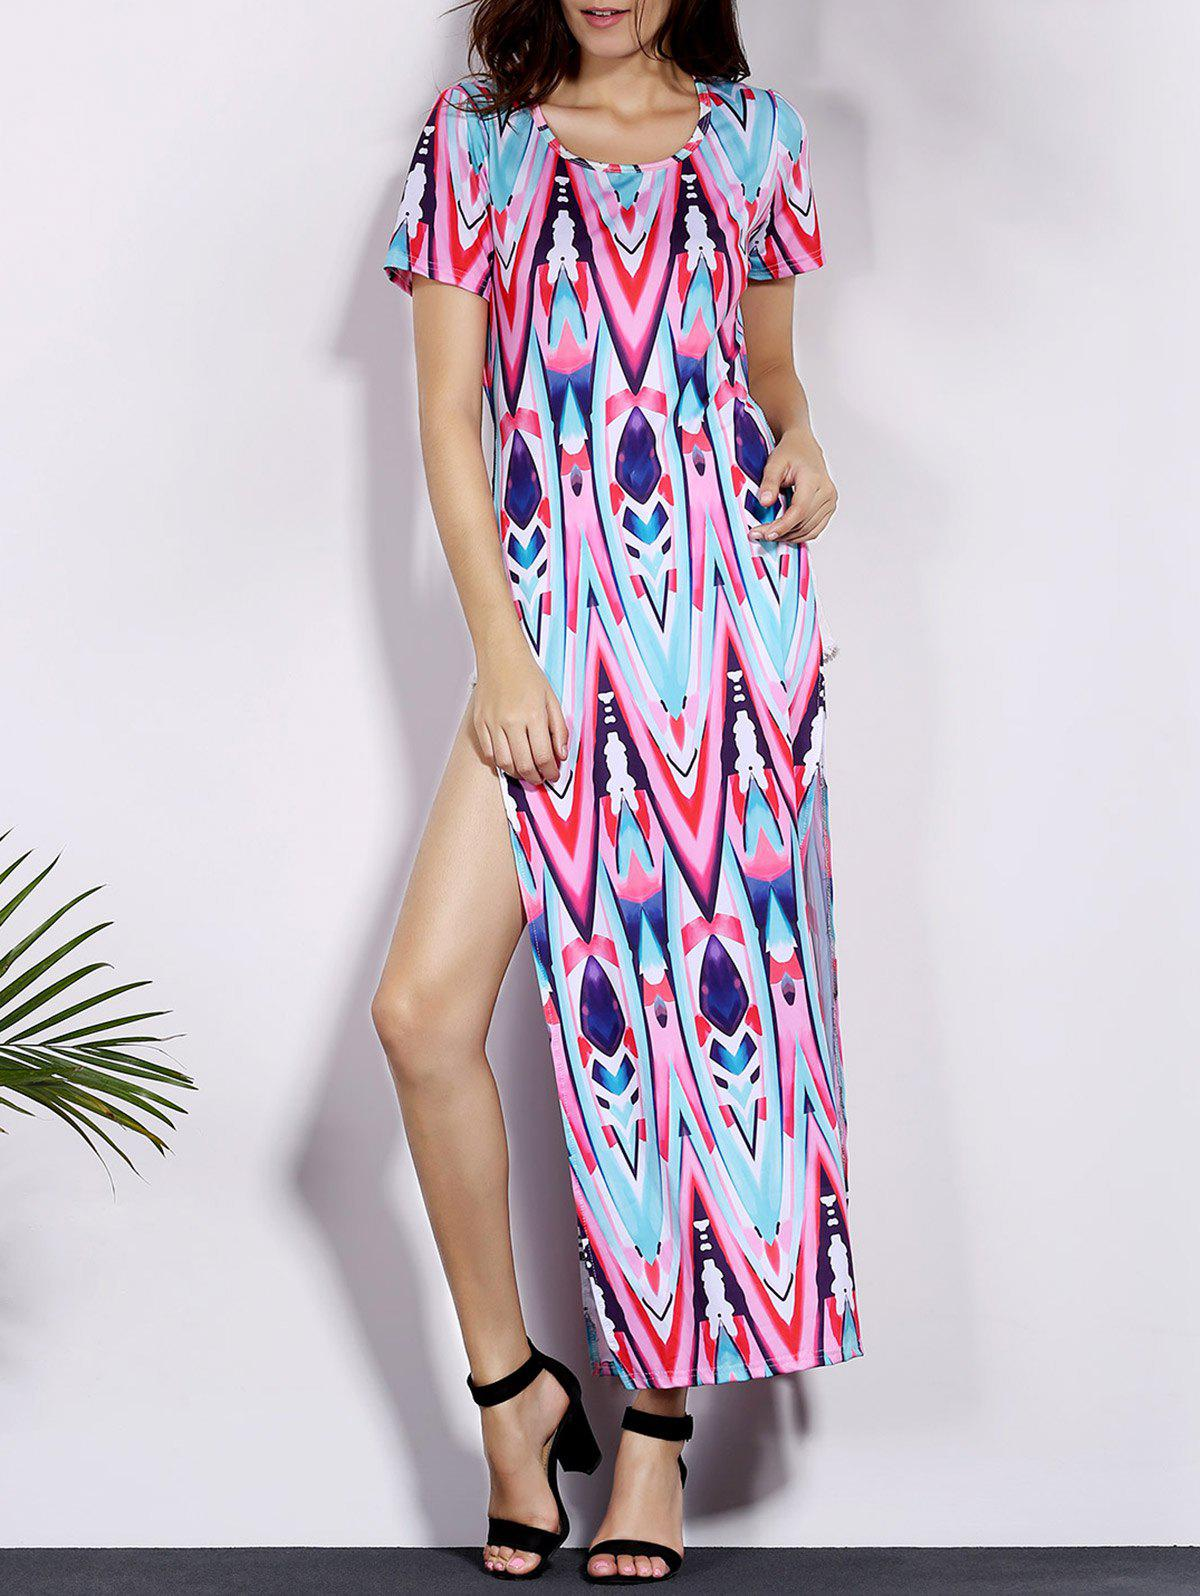 Alluring Printed Short Sleeve Side Slit Women's Dress - COLORMIX M